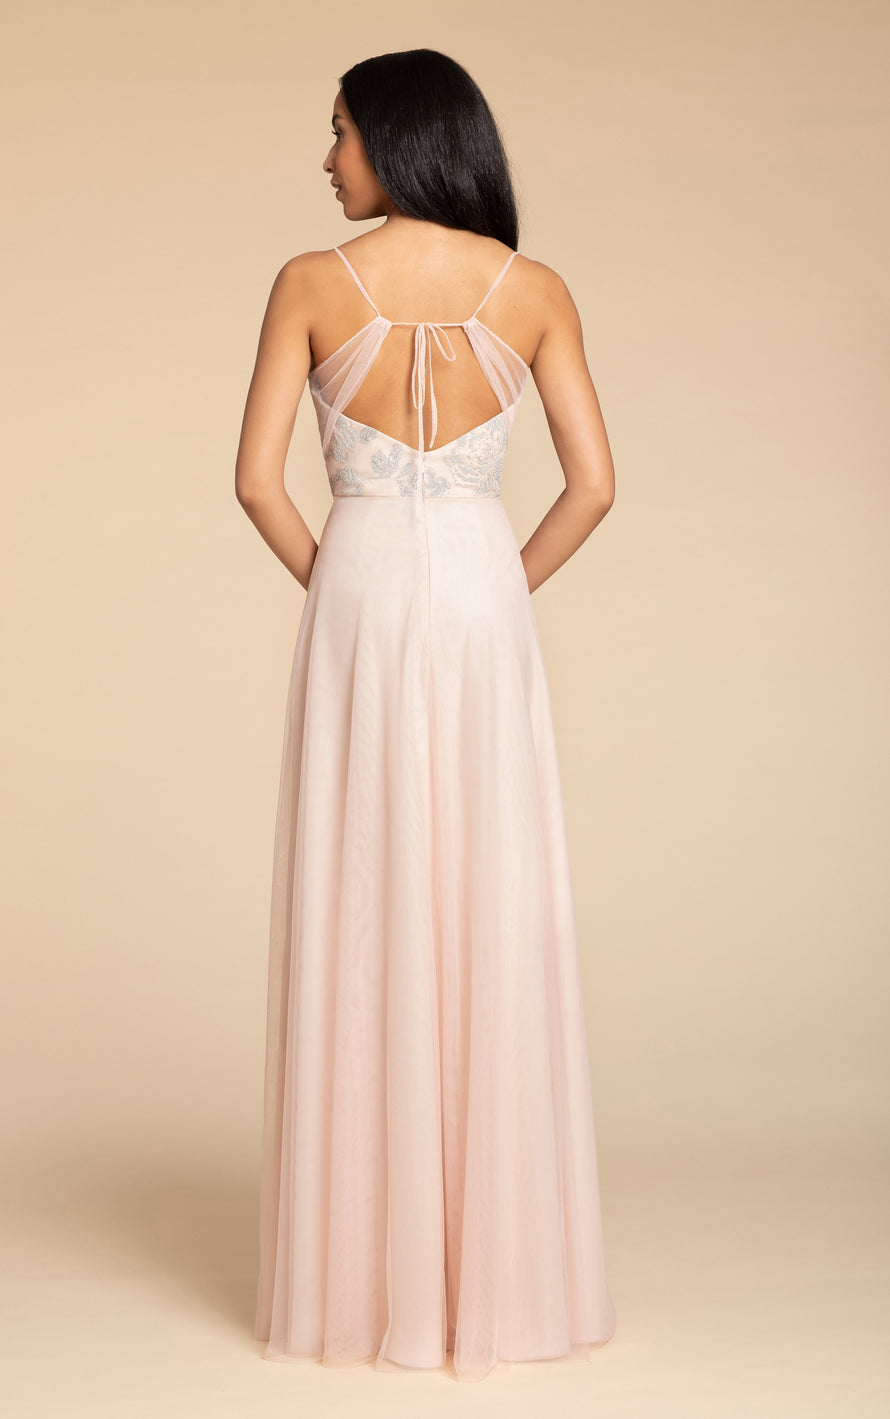 Hayley Paige Occasions Long Bridesmaid Dress - 5903 back